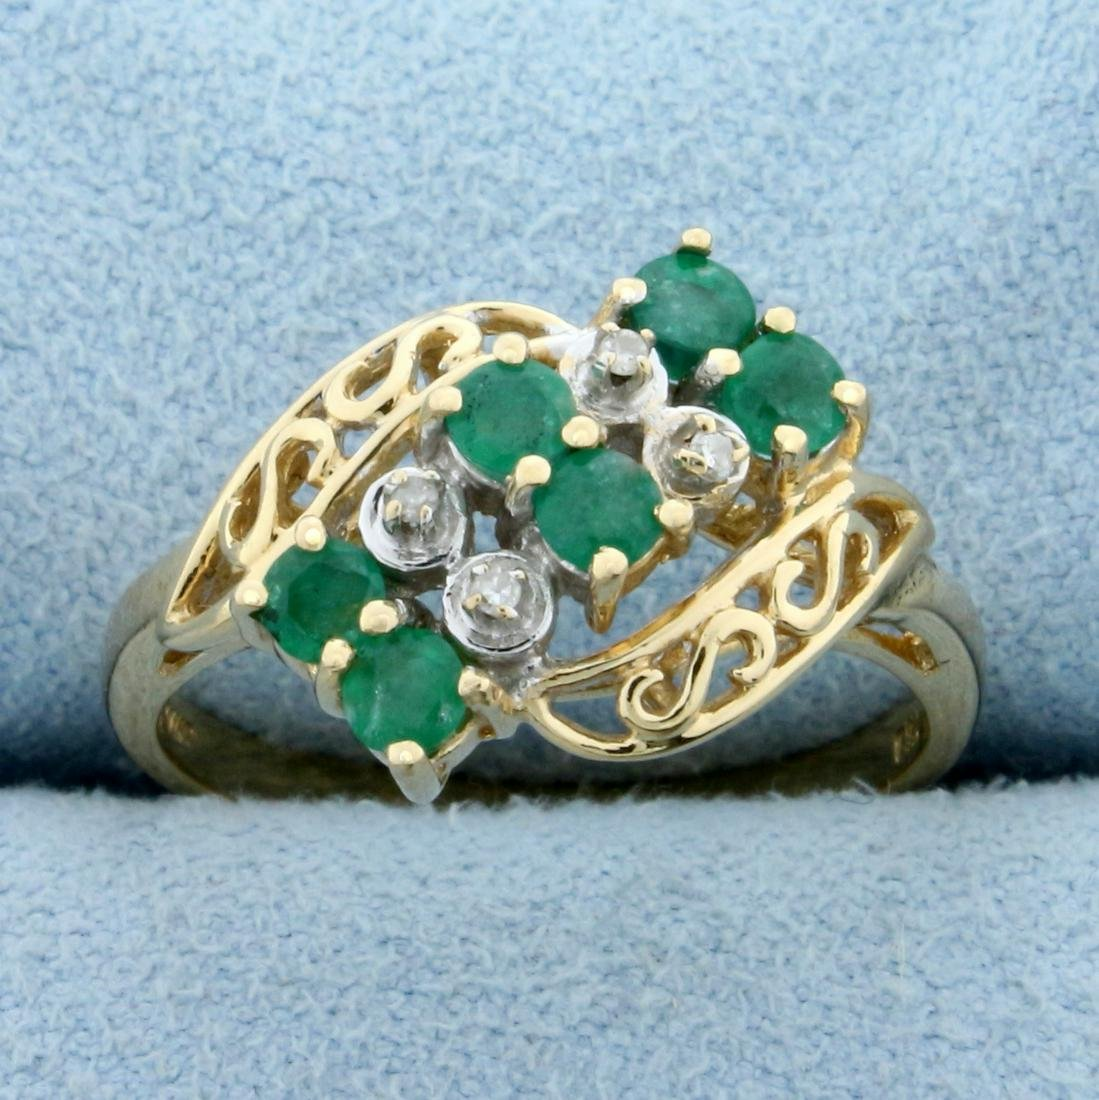 1/2ct TW Emerald and Diamond Ring in 14K Yellow Gold